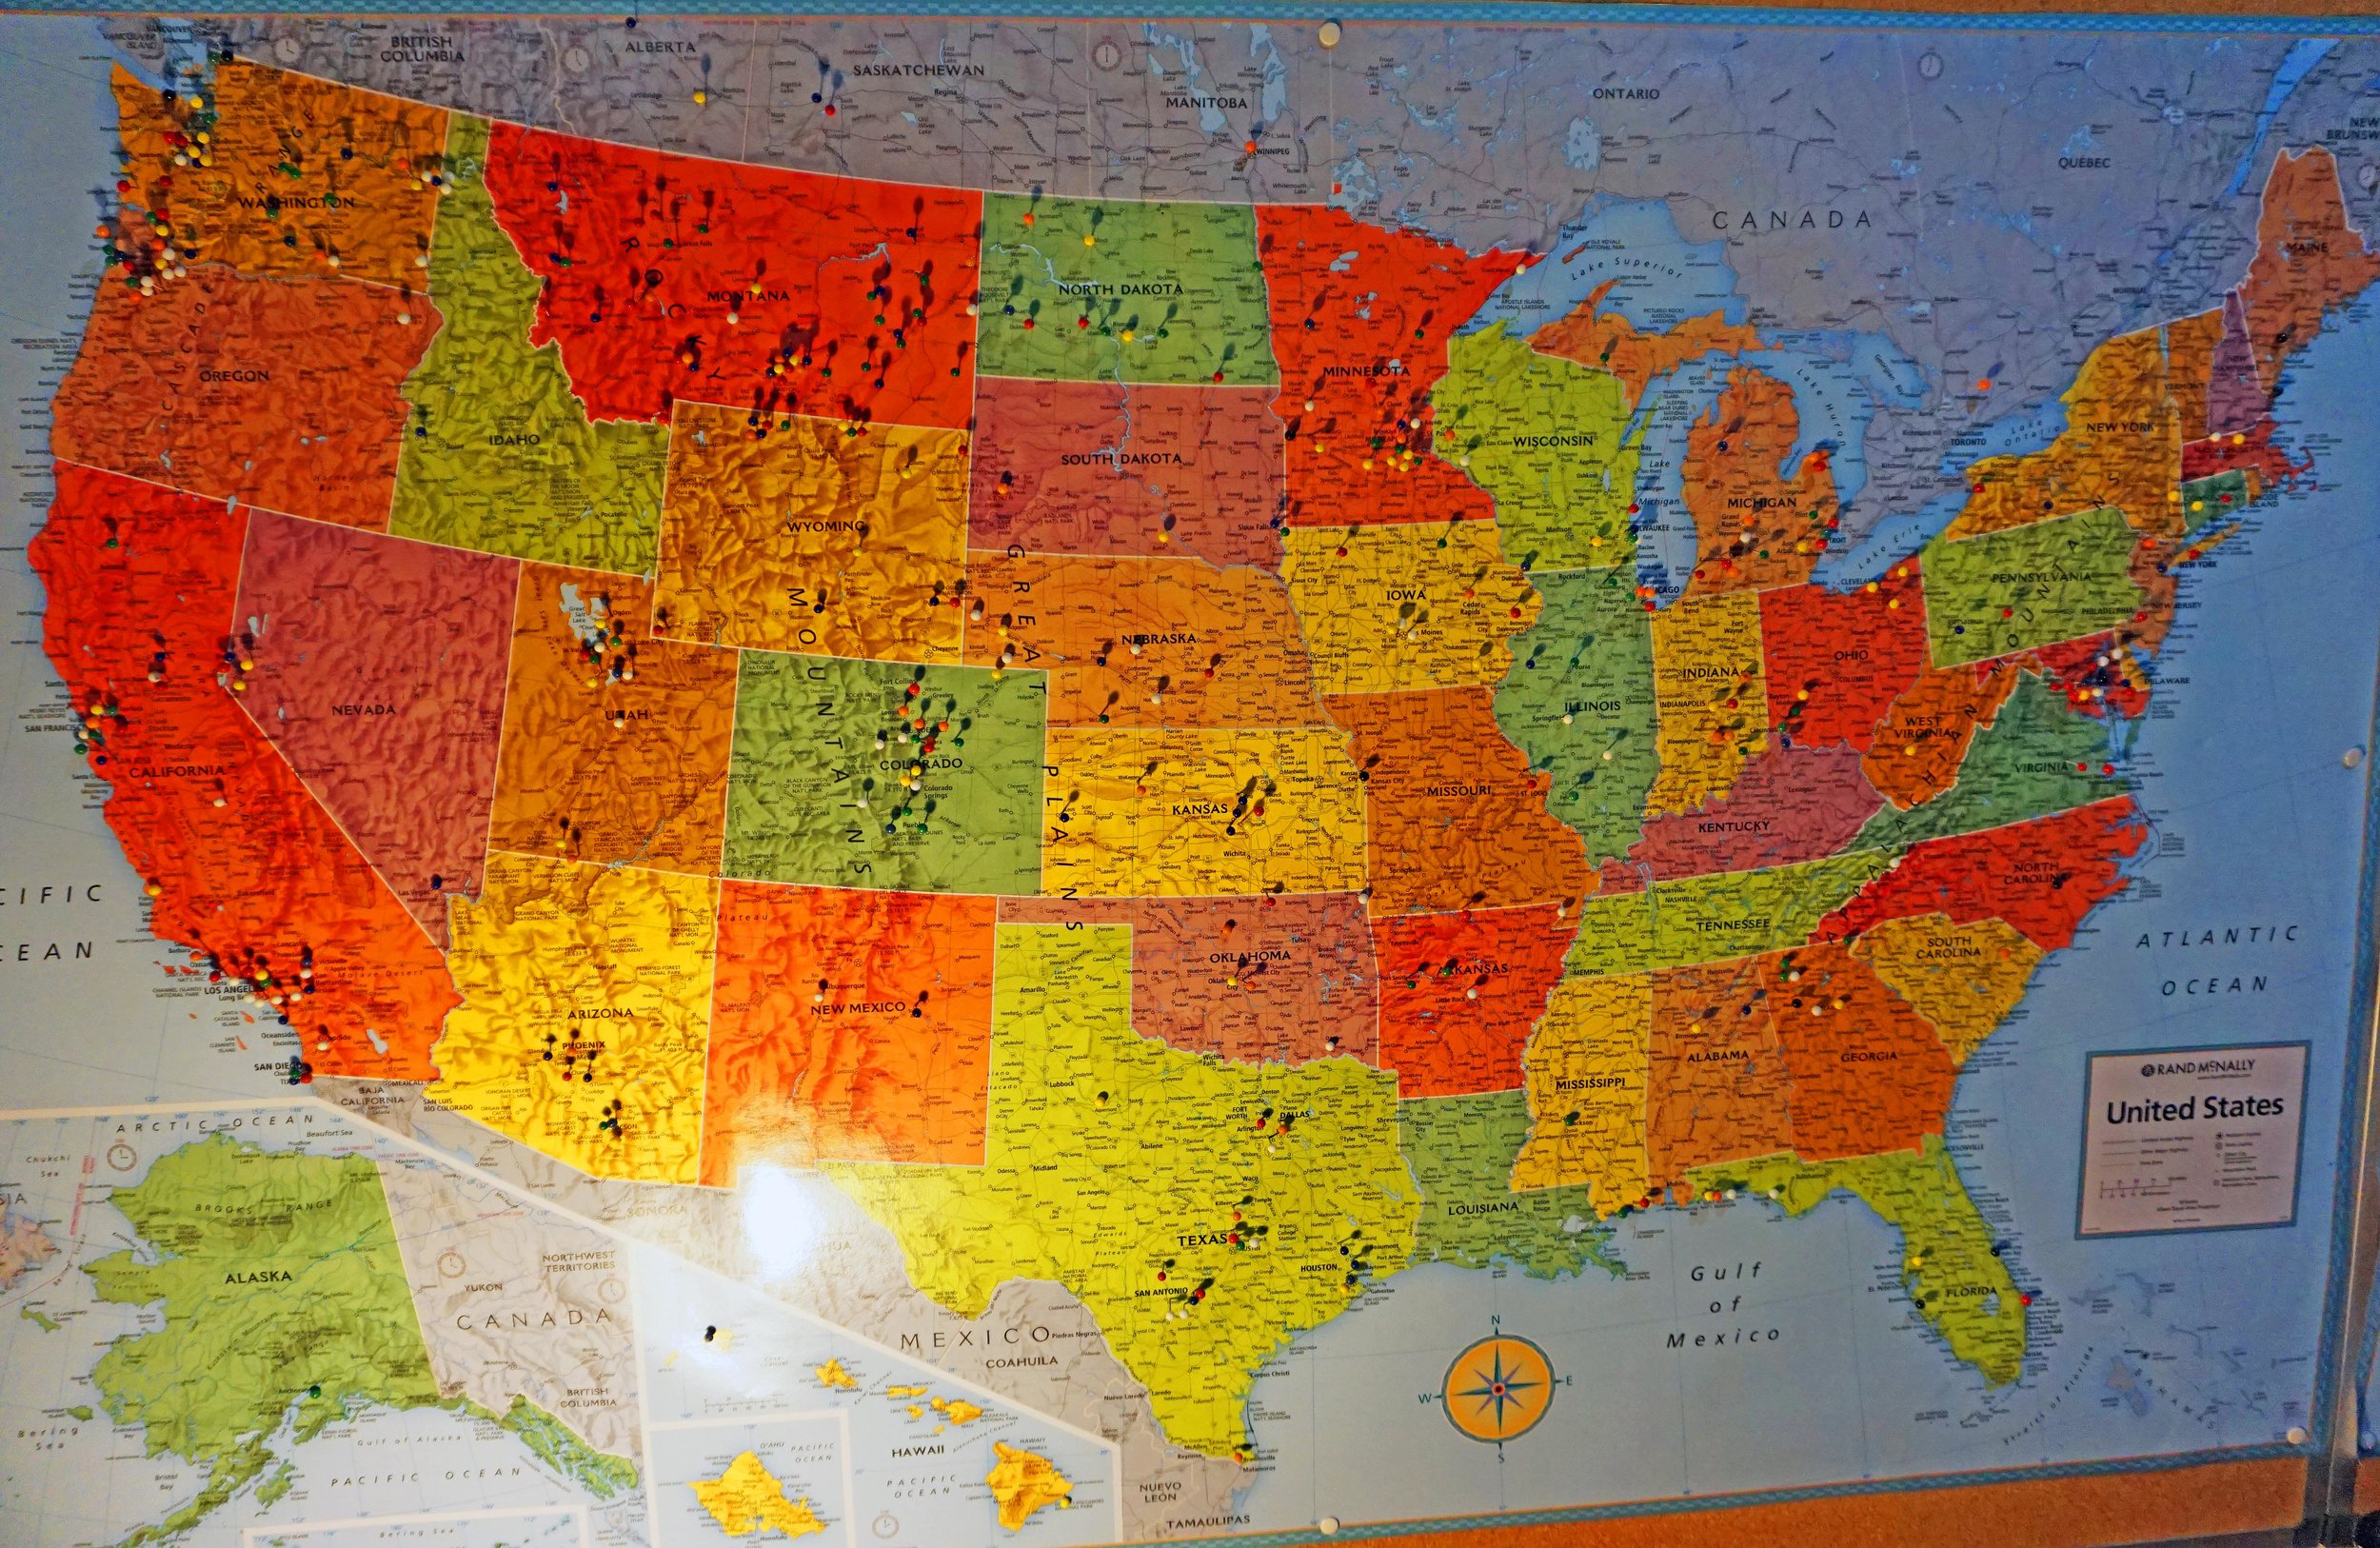 Tourists place pins on our Museum map showing where they're visiting from. Most of our visitors come from within the contiguous United States. We also have visitors from Alaska, Hawaii, Canada, Europe and Australia.